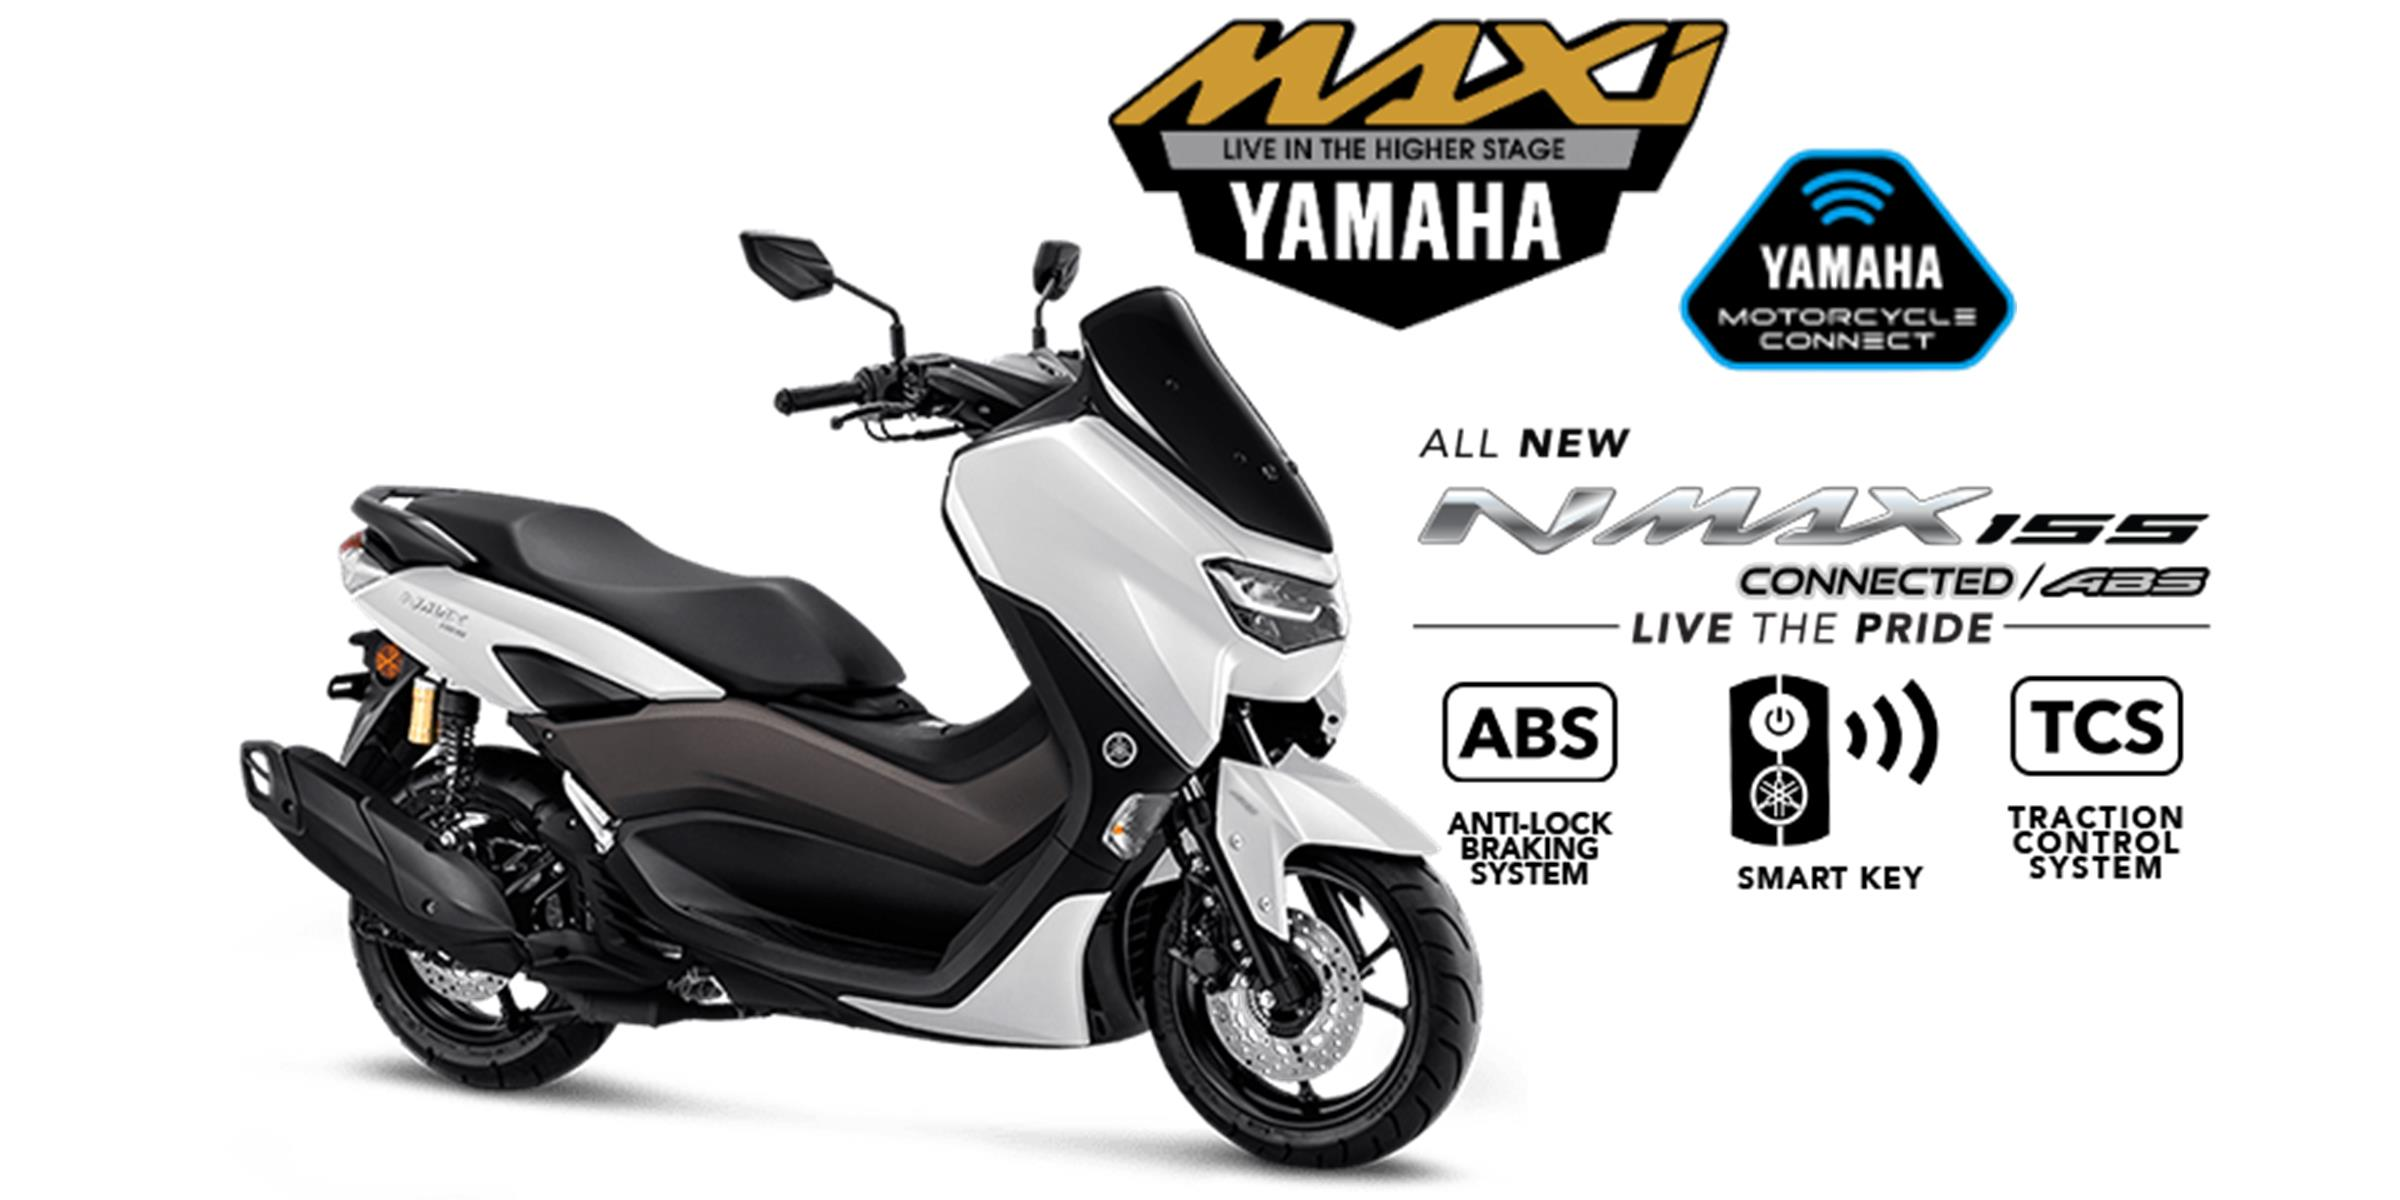 yamaha all new nmax abs connected